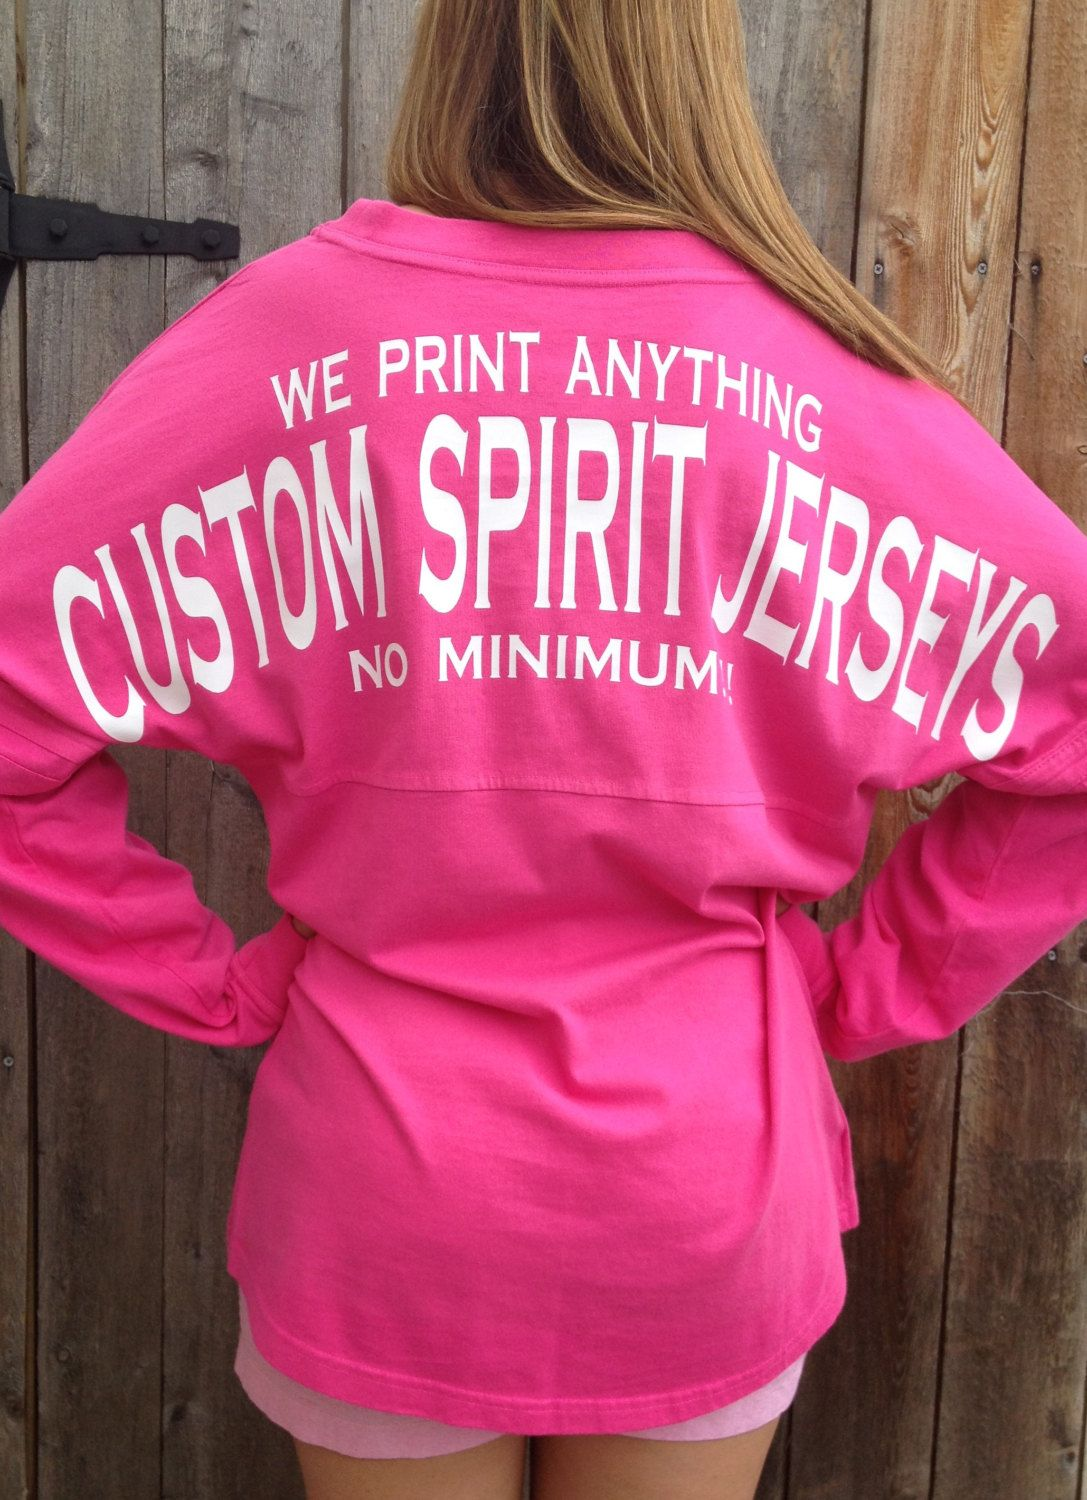 Custom Spirit Jerseys! No minimum order! great for school spirit ...